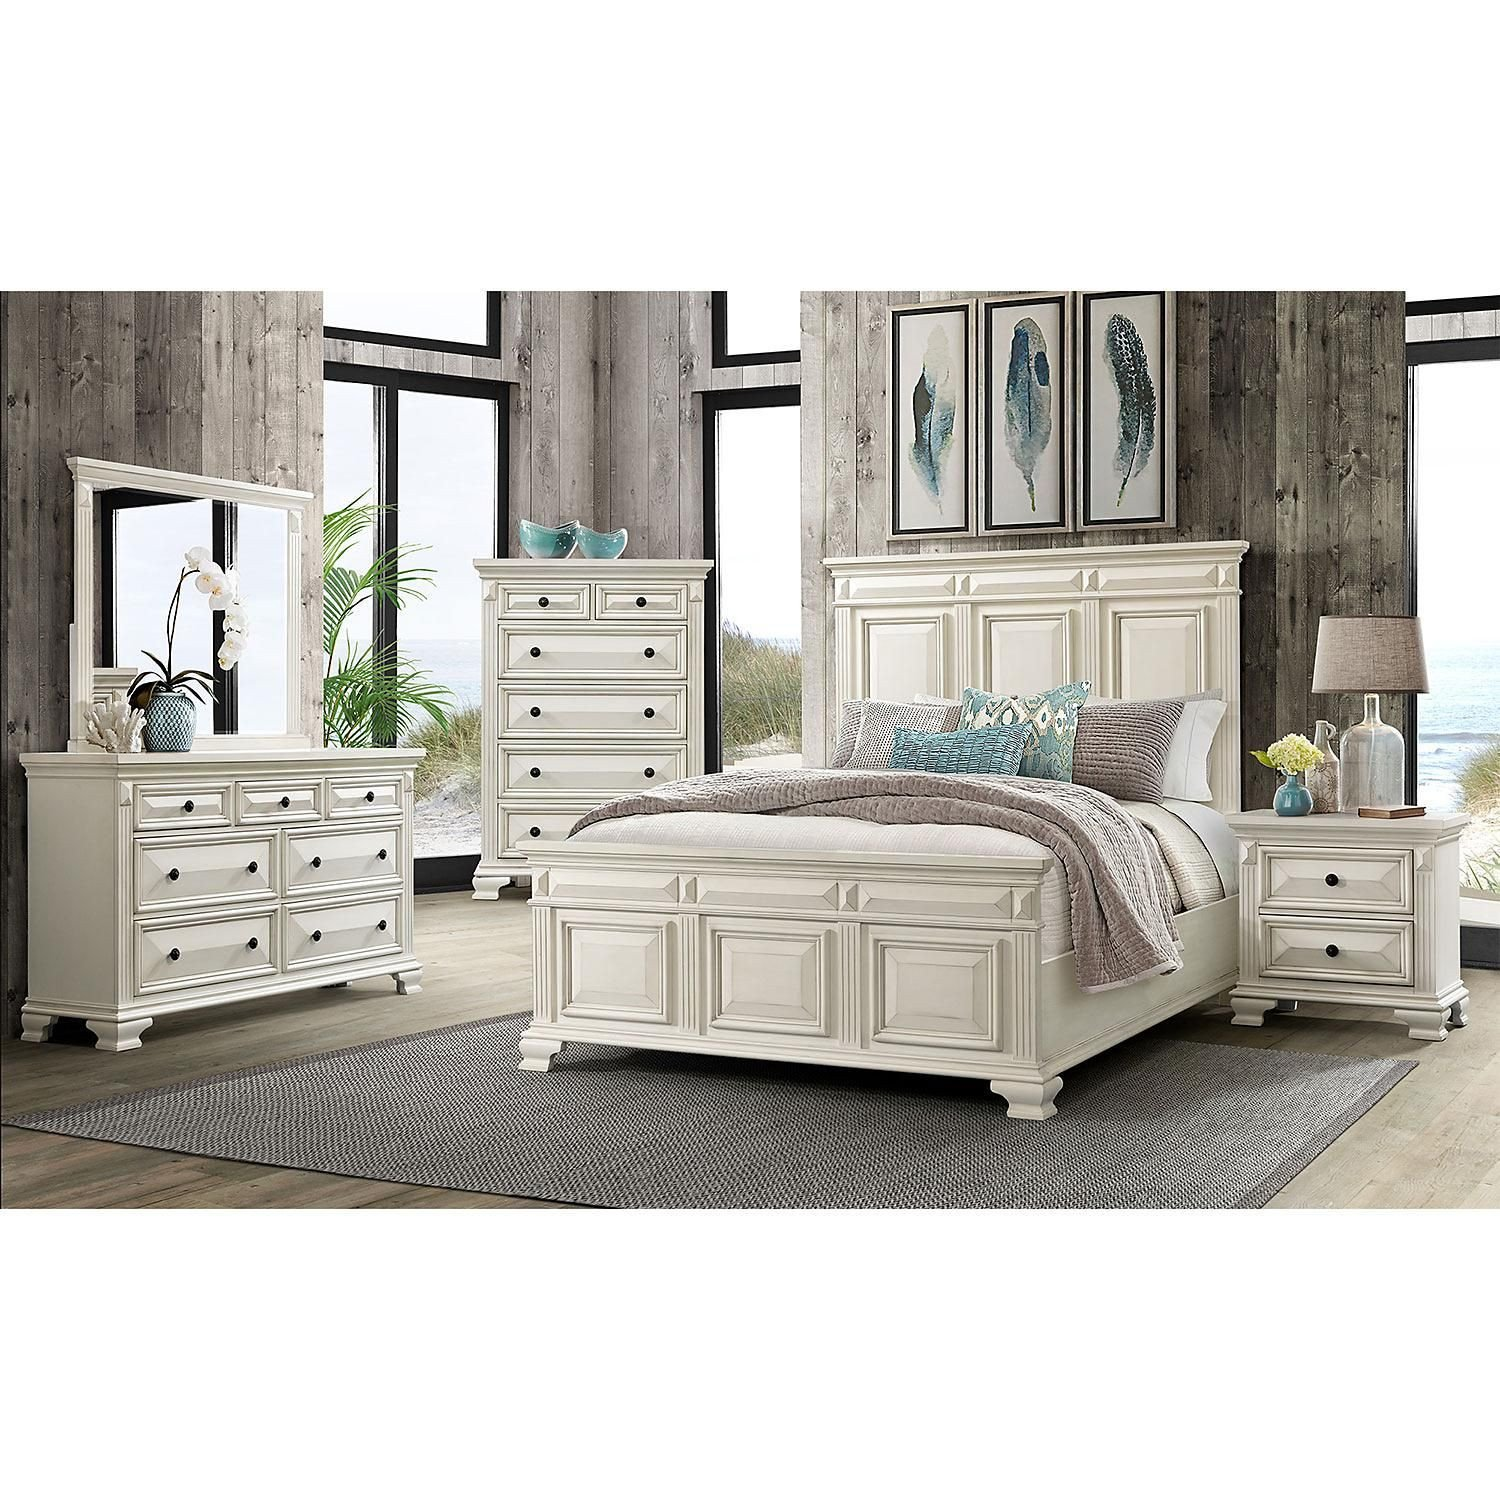 Full Bedroom Furniture Set Lovely $1599 00 society Den Trent Panel 6 Piece King Bedroom Set